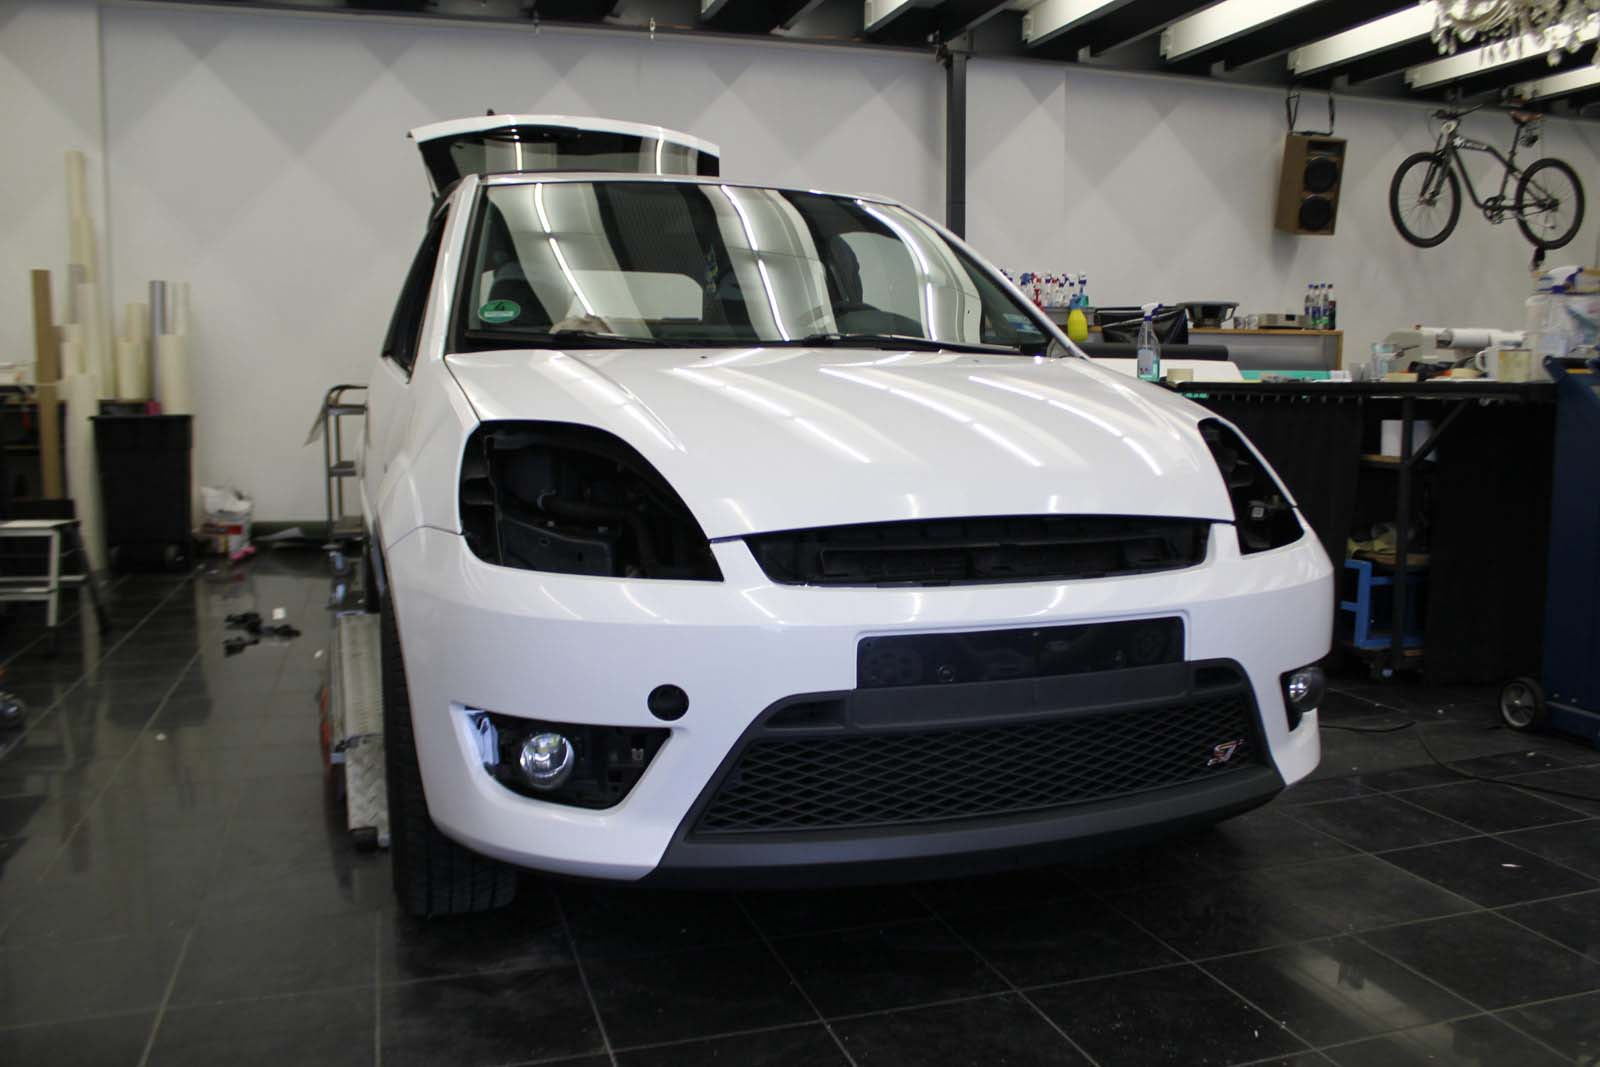 FORD_FIESTA_WRAPPING_WEISS_GLANZ_MIT_RACING_DESIGN_SCHWARZ_MATT_09